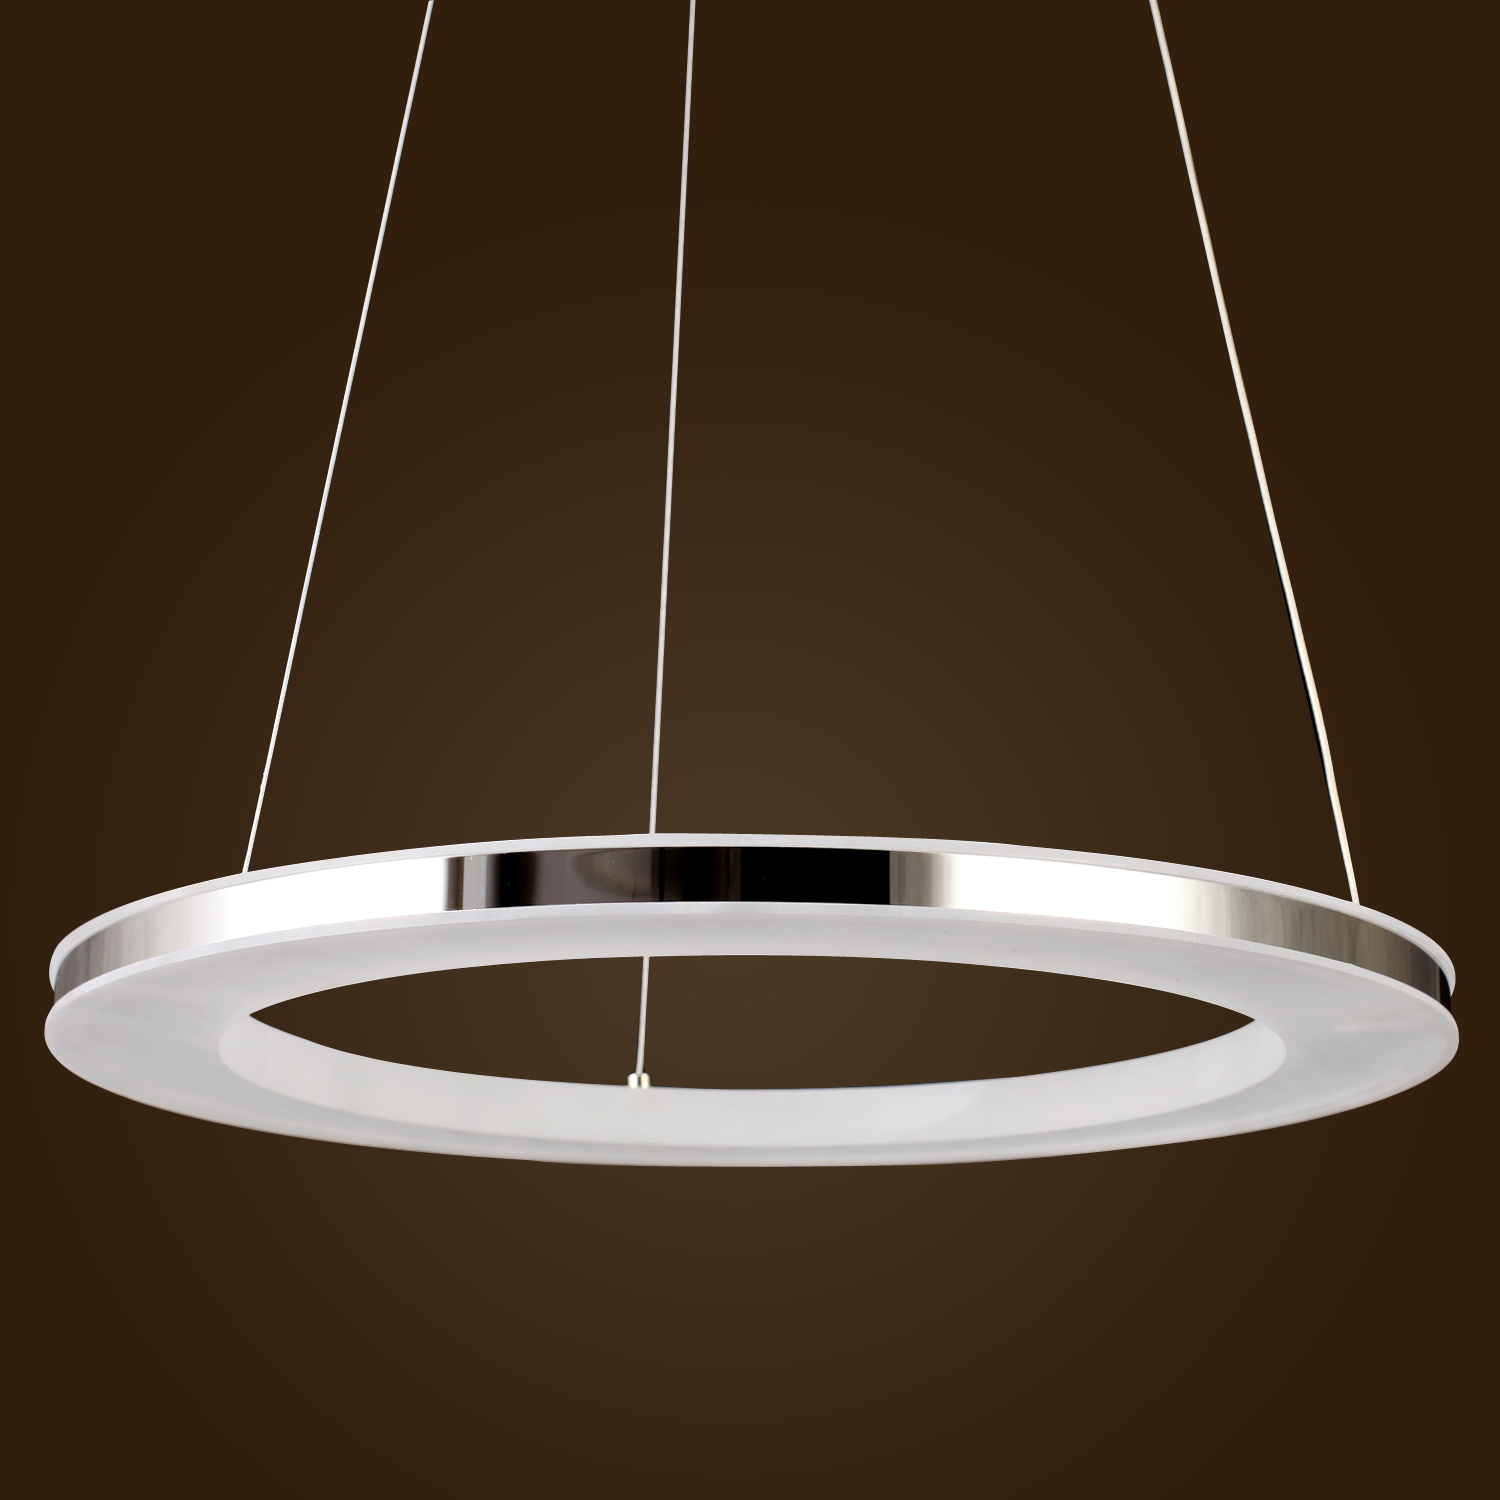 Stainless steel plating acrylic pendant ceiling light led modern item specifics mozeypictures Choice Image